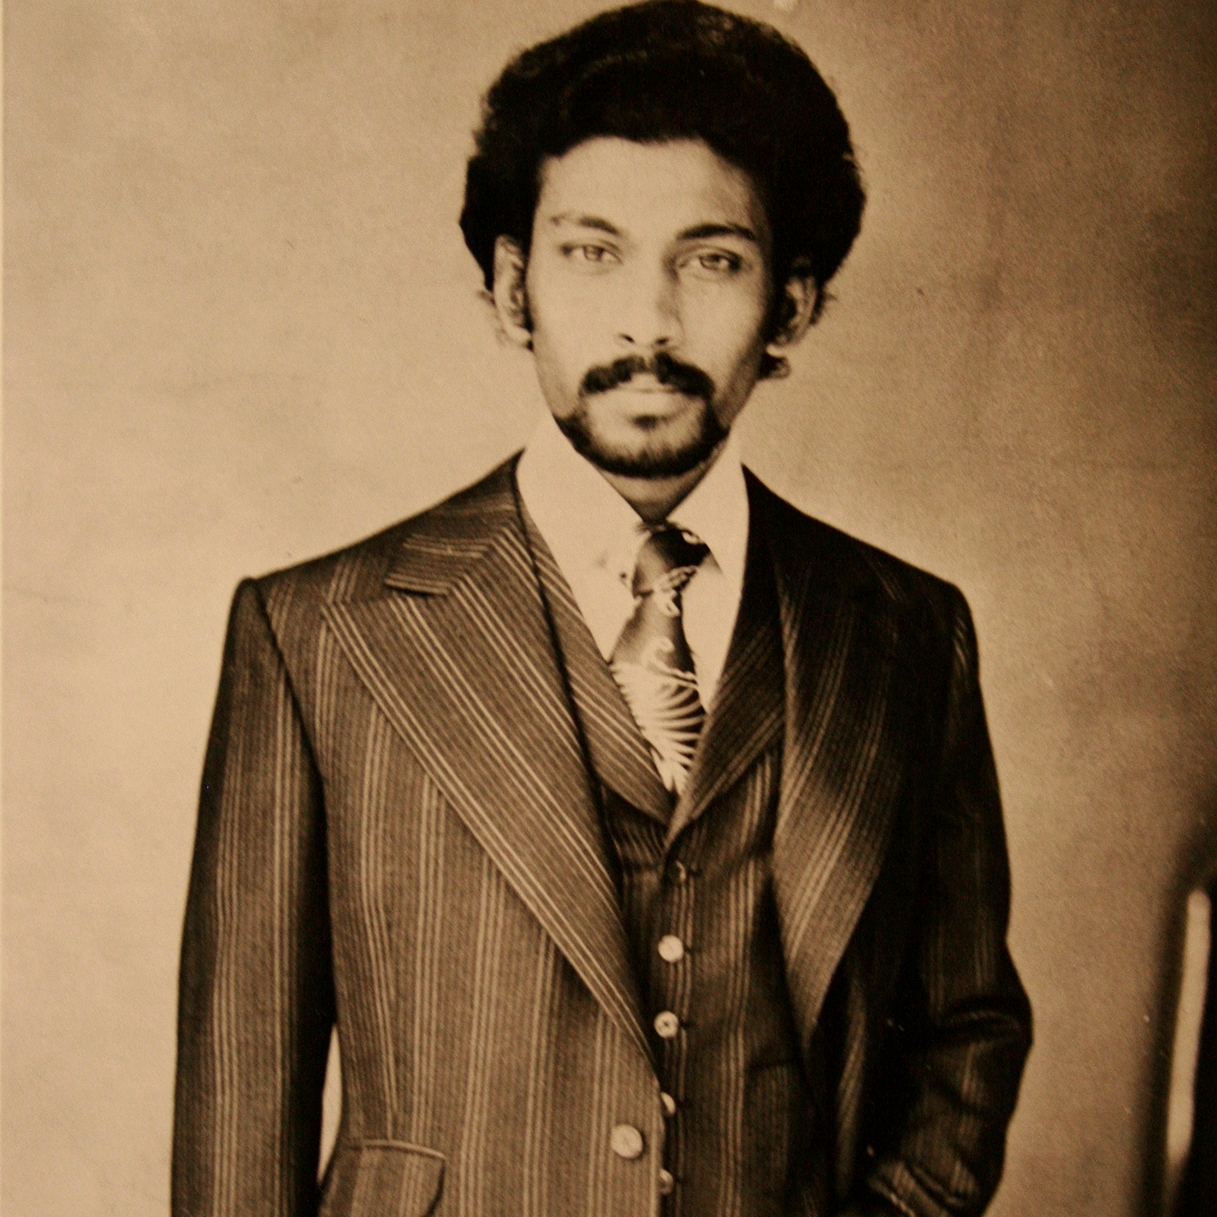 Andrew Ramroop in 1975 wearing the suit he made for the Federation of Master Tailors Contest